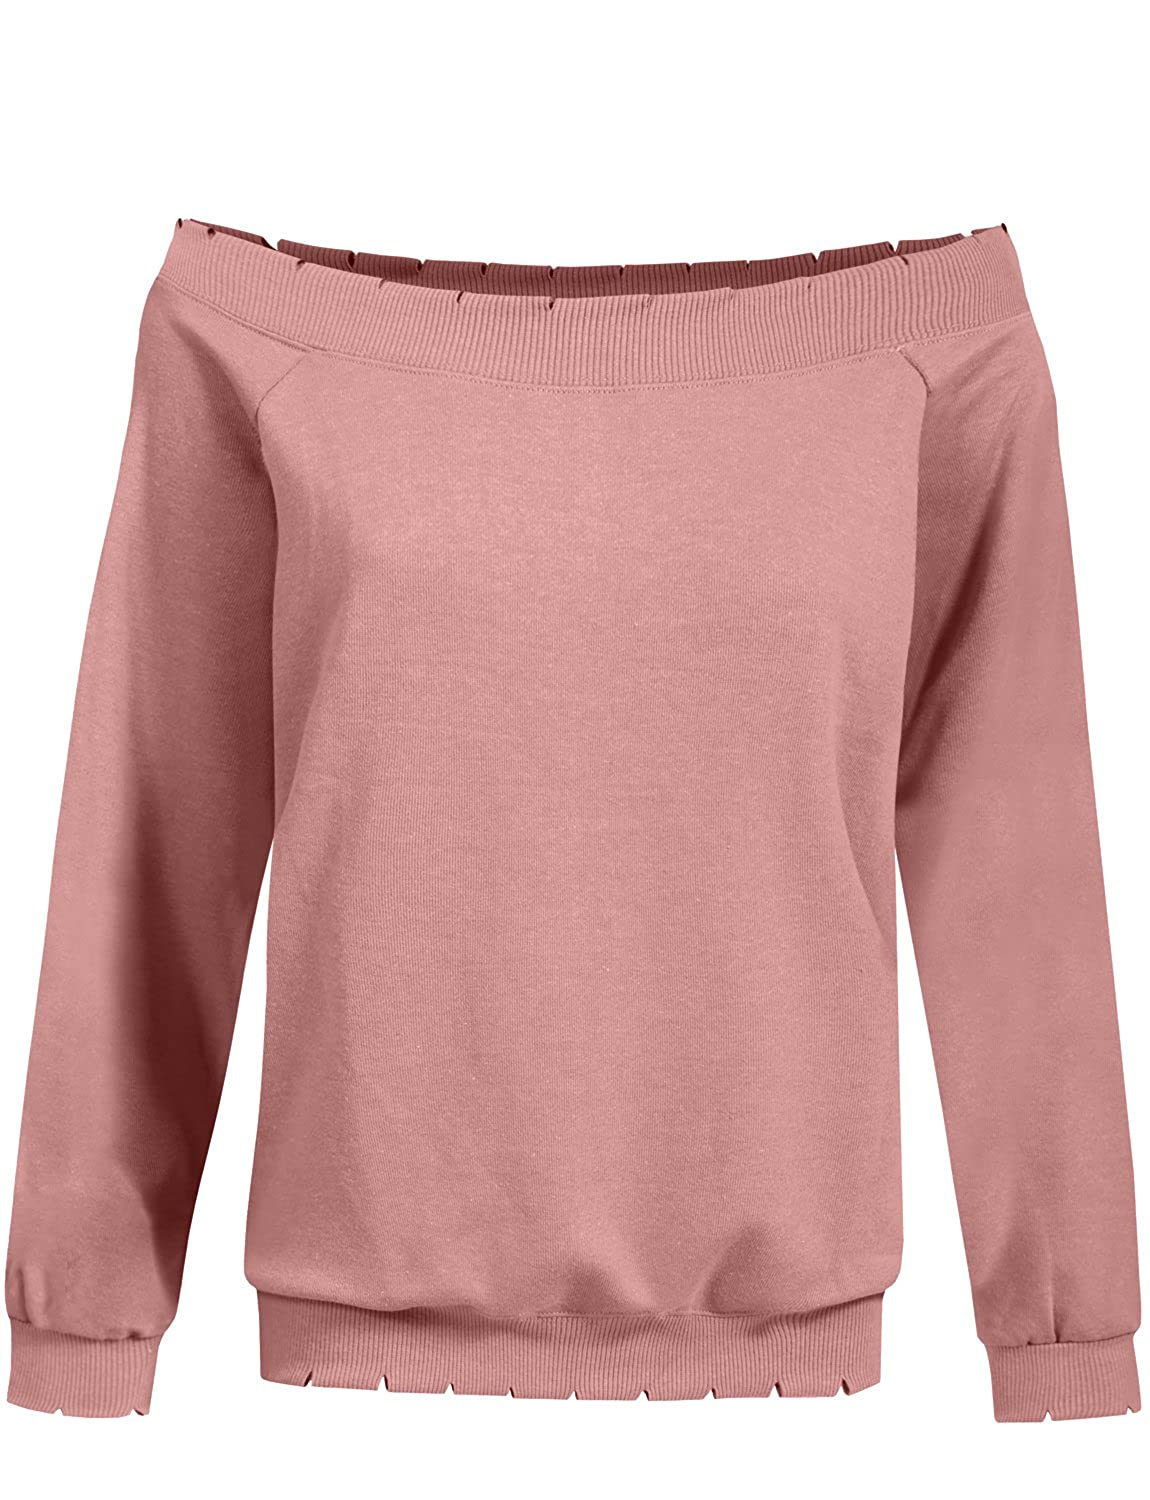 a4ef91dd970ec4 NE PEOPLE Womens Long Raglan Sleeve Open Shoulder Lightly Distressed Ribbed  Top at Amazon Women s Clothing store